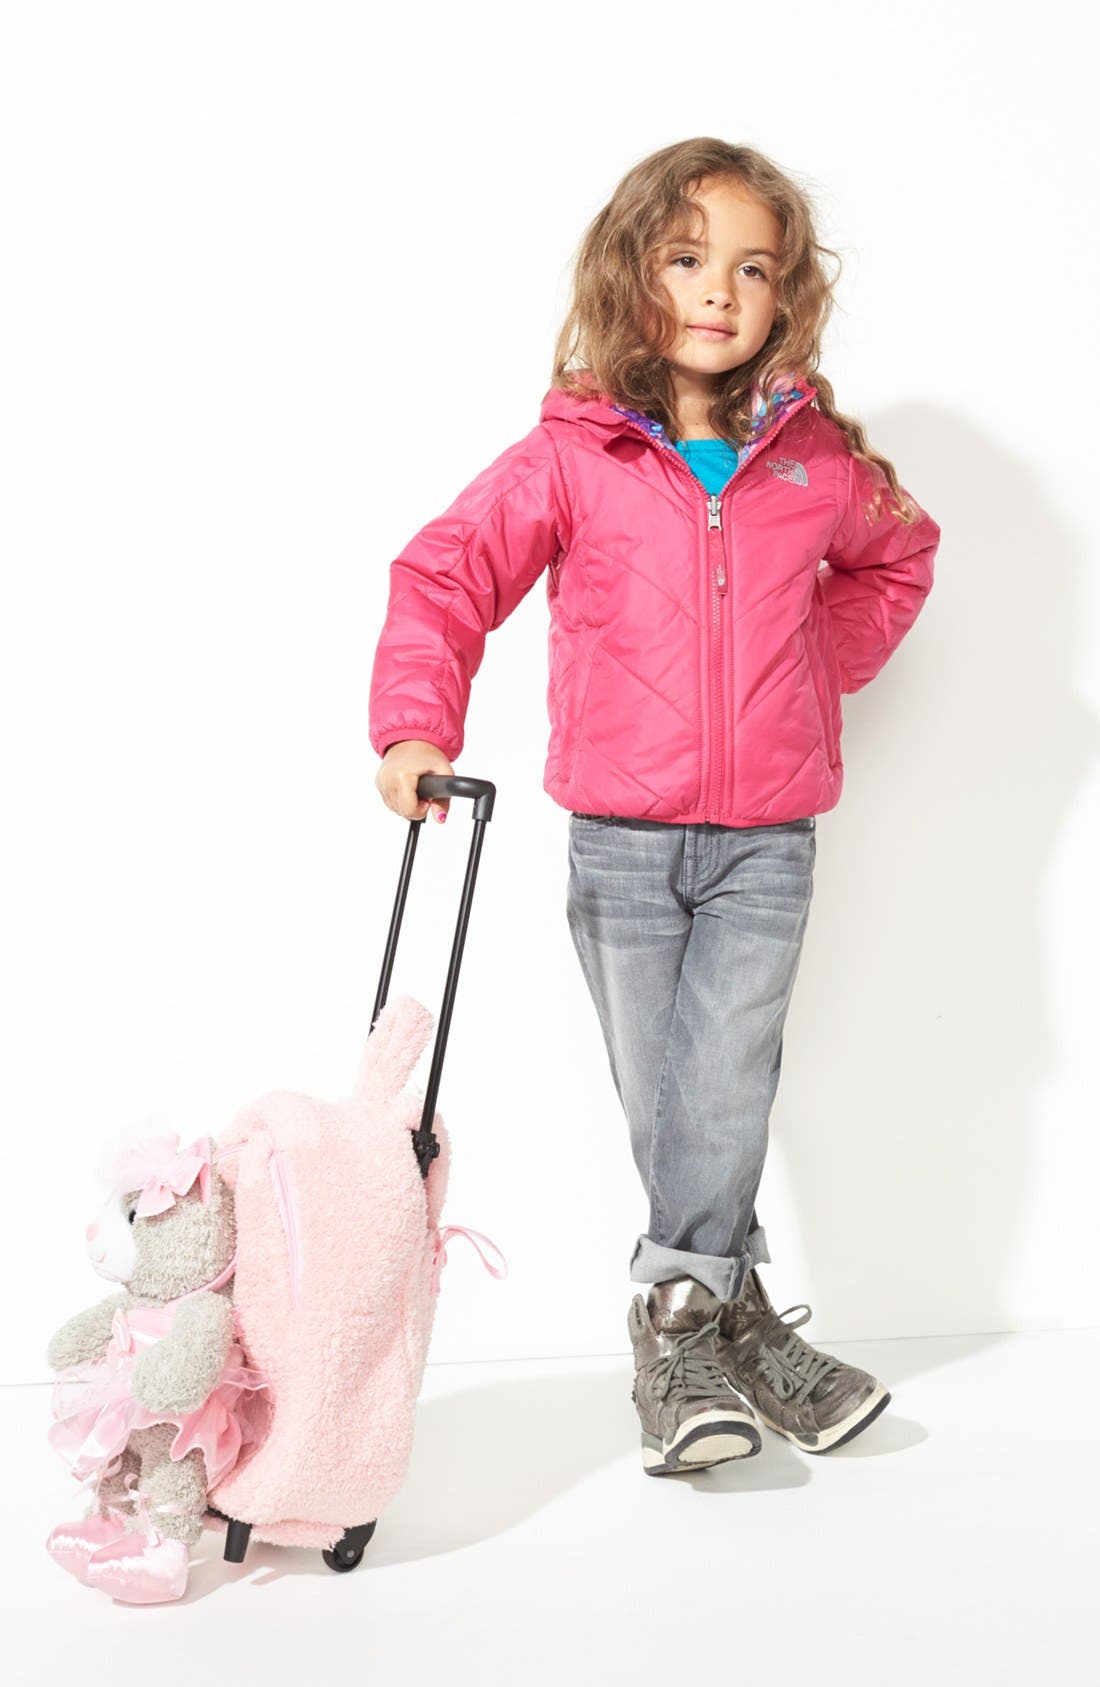 Alternate Image 1 Selected - The North Face Reversible Puffer Jacket, Tucker + Tate Intarsia Sweater, Joe's Denim Jeggings & Popatu Rolling Backpack (Toddler Girls)